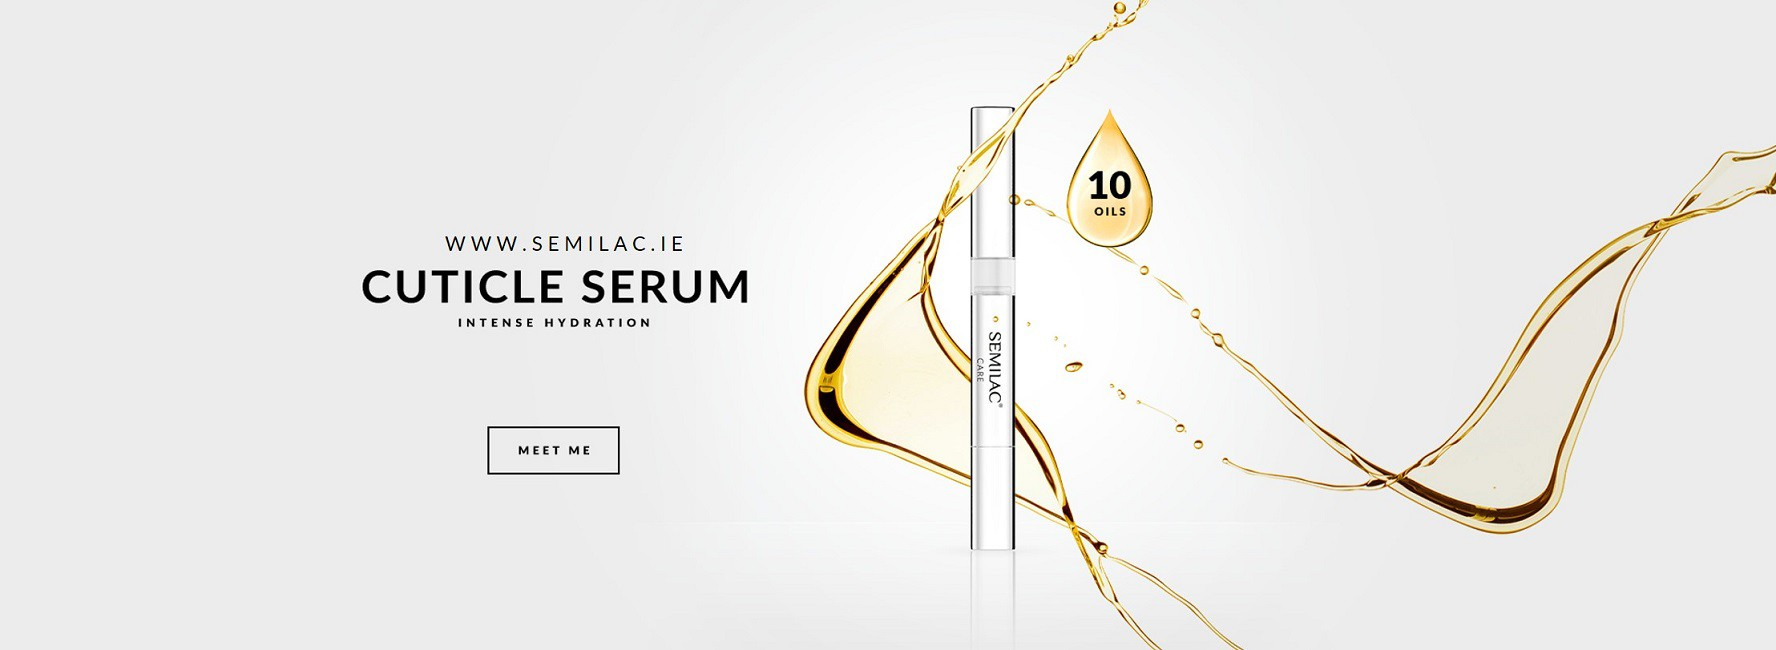 Semilac Ireland Cuticle serum pen with 10 natural oils